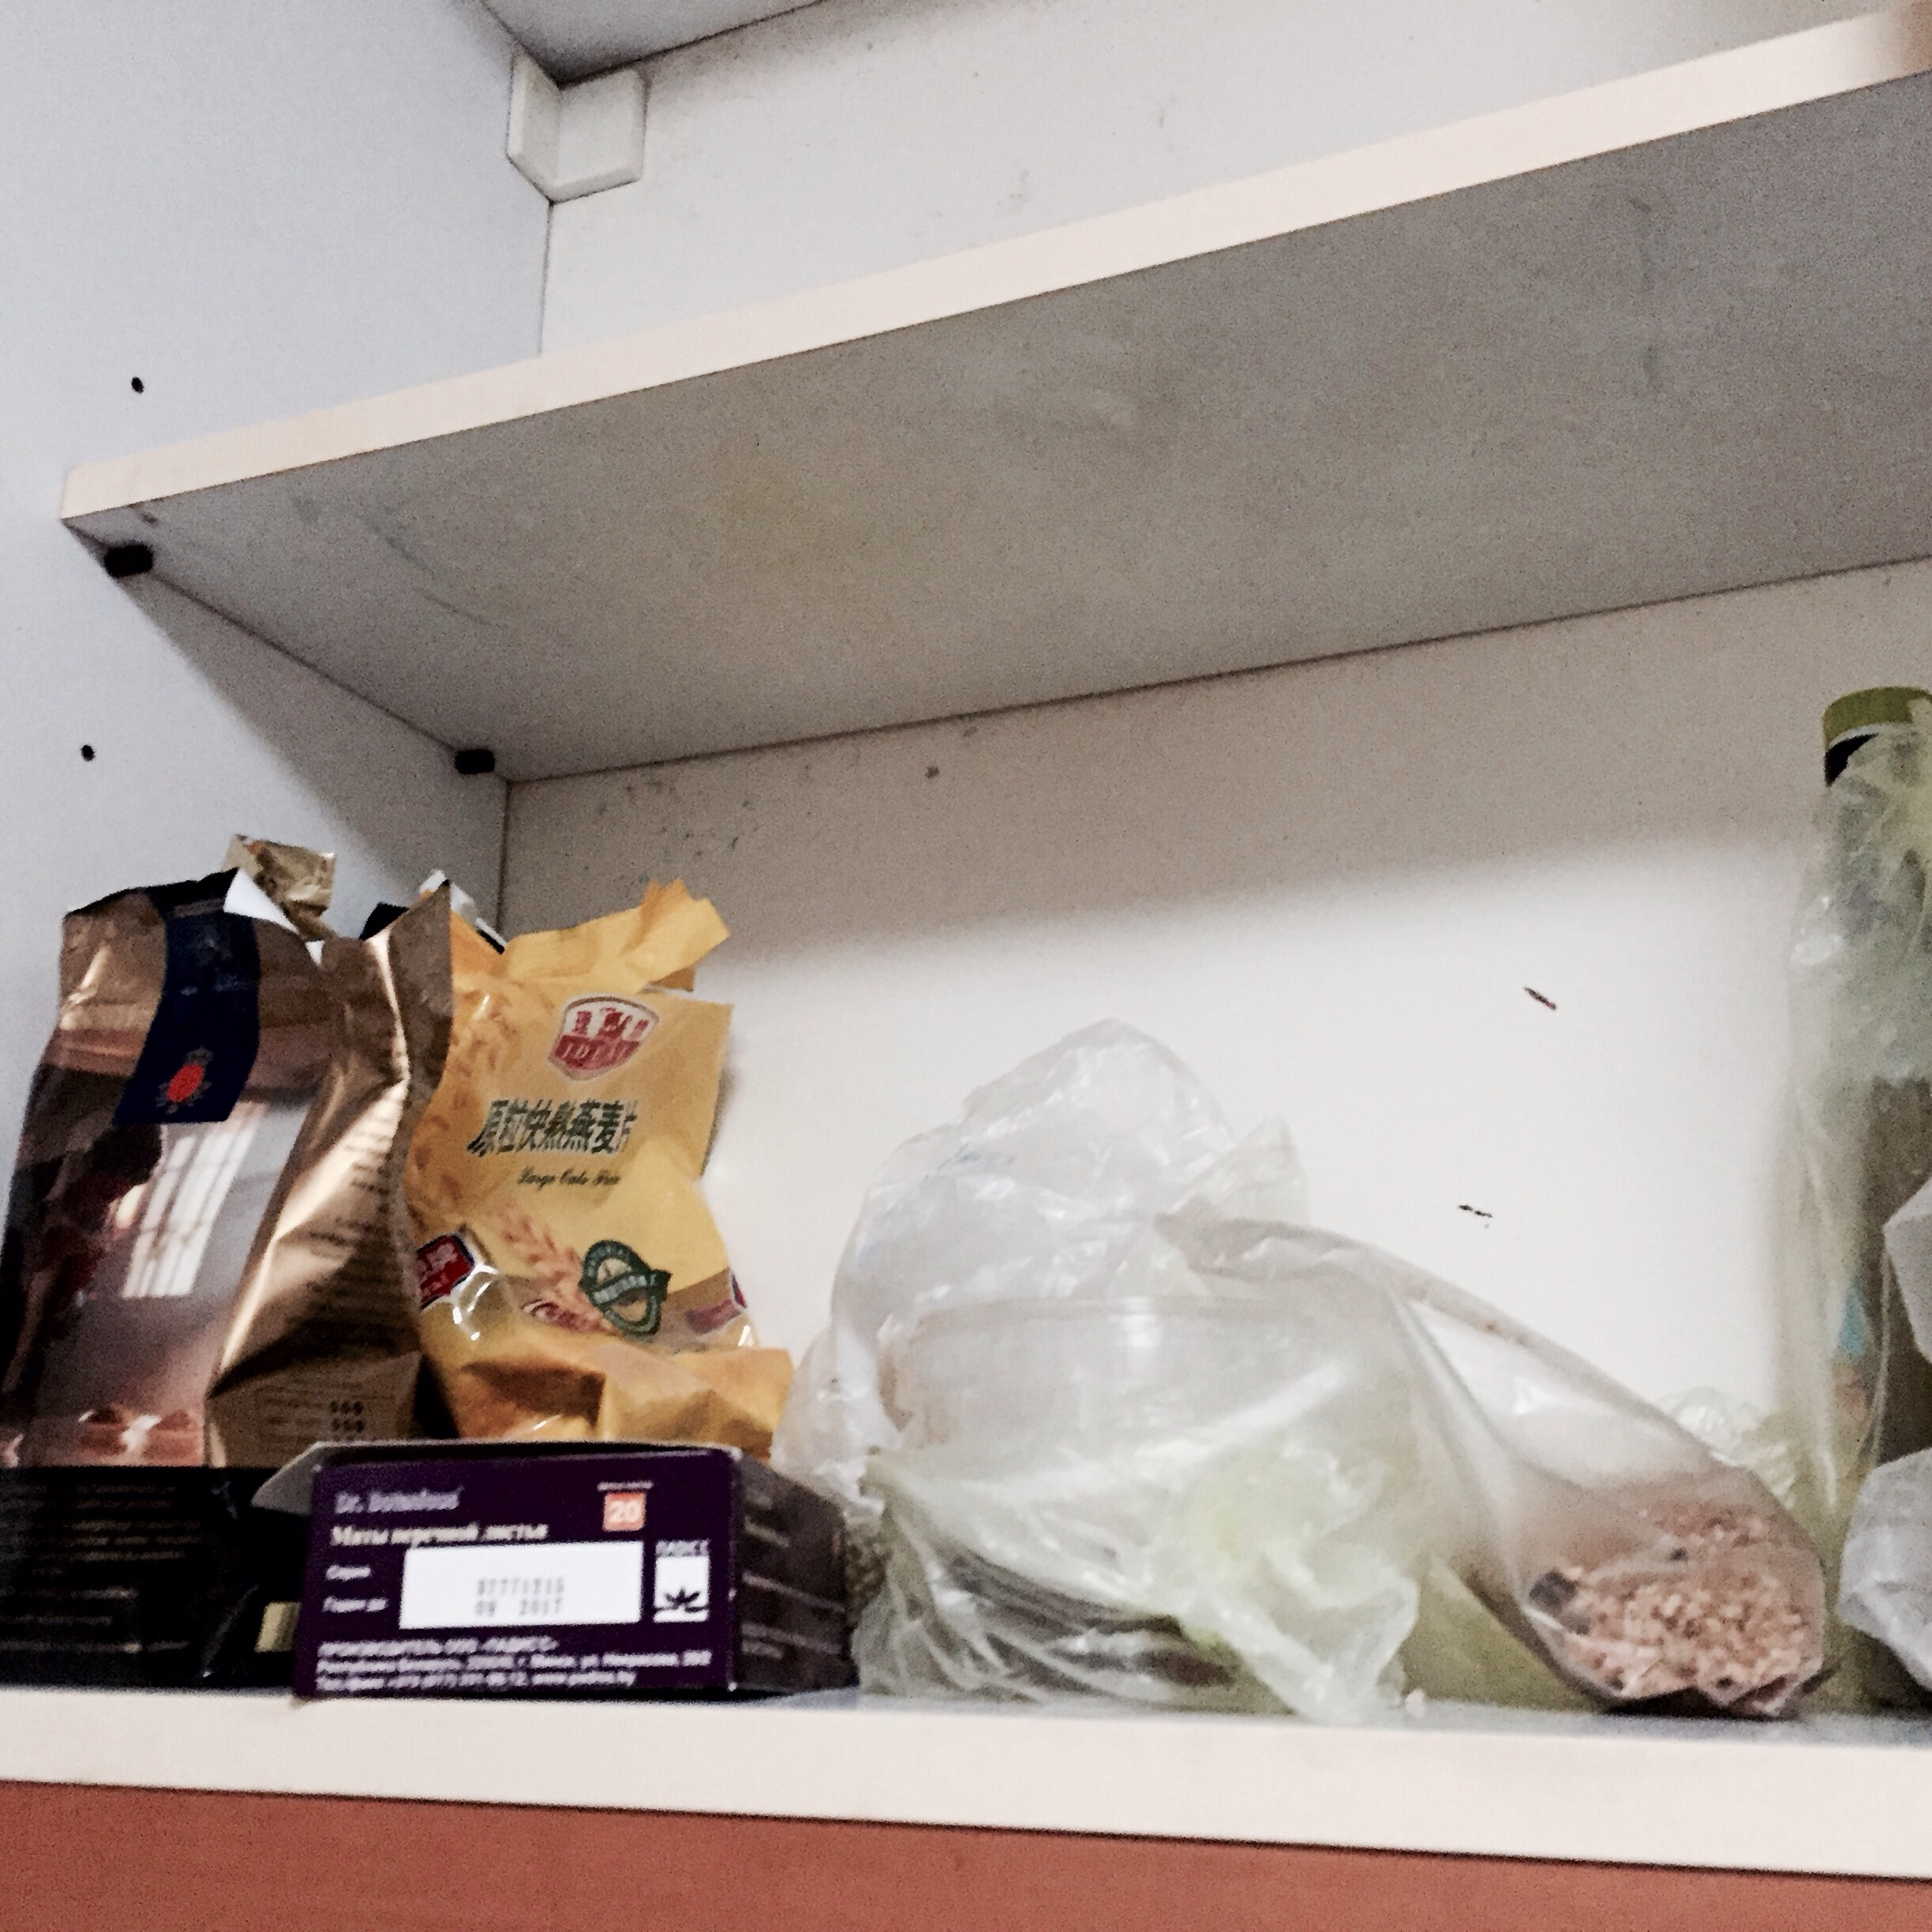 It's nice moving in to a new apartment with food (grechka) already overflowing out of your cupboard that belonged to a model who was there one year ago